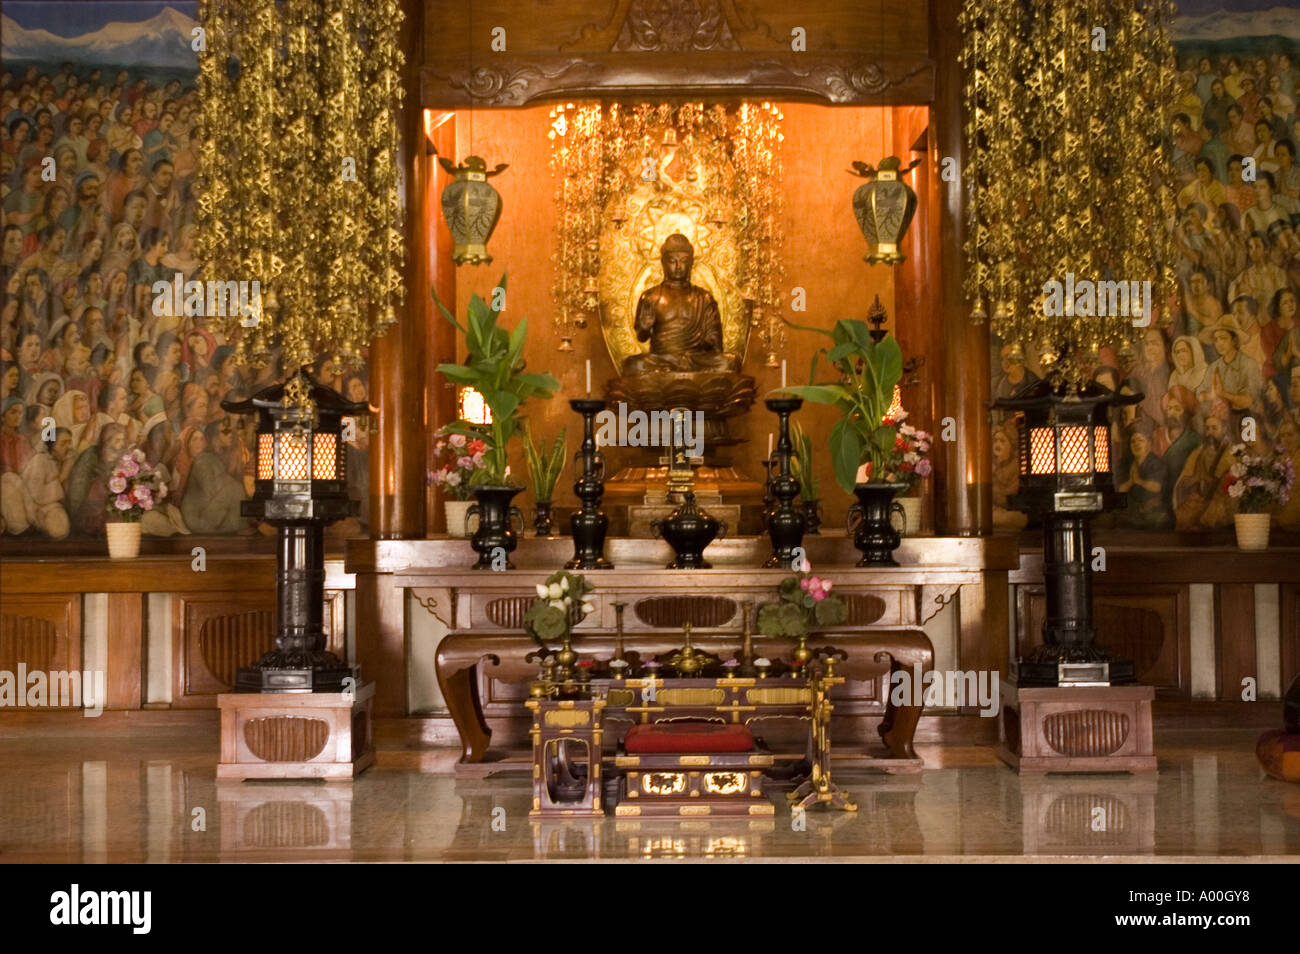 Stone Fireplace Pictures Interior With Altair And Buddha Statue In Japanese